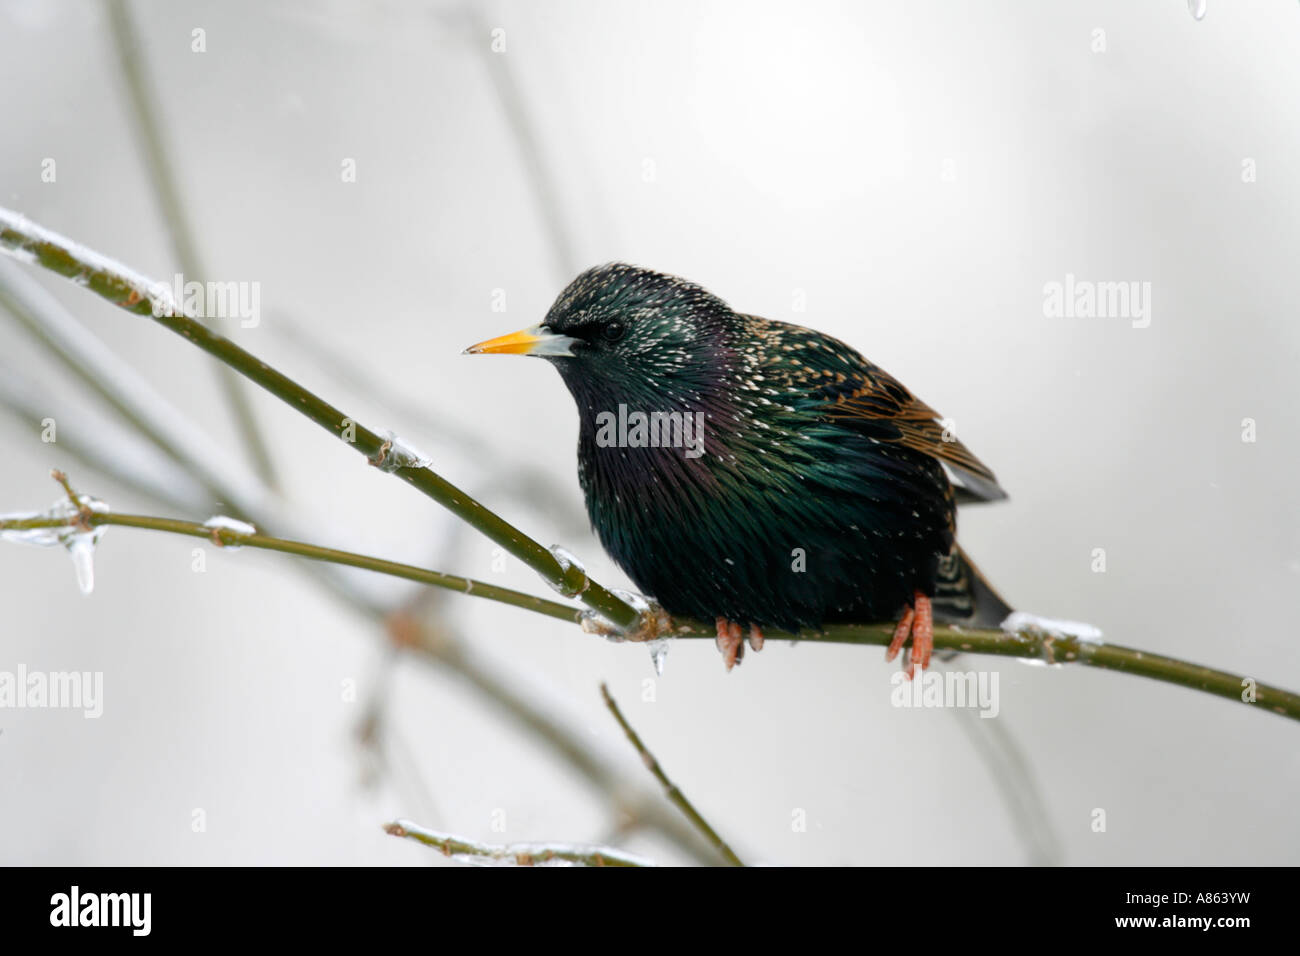 European Starling on Icy Branch - Stock Image